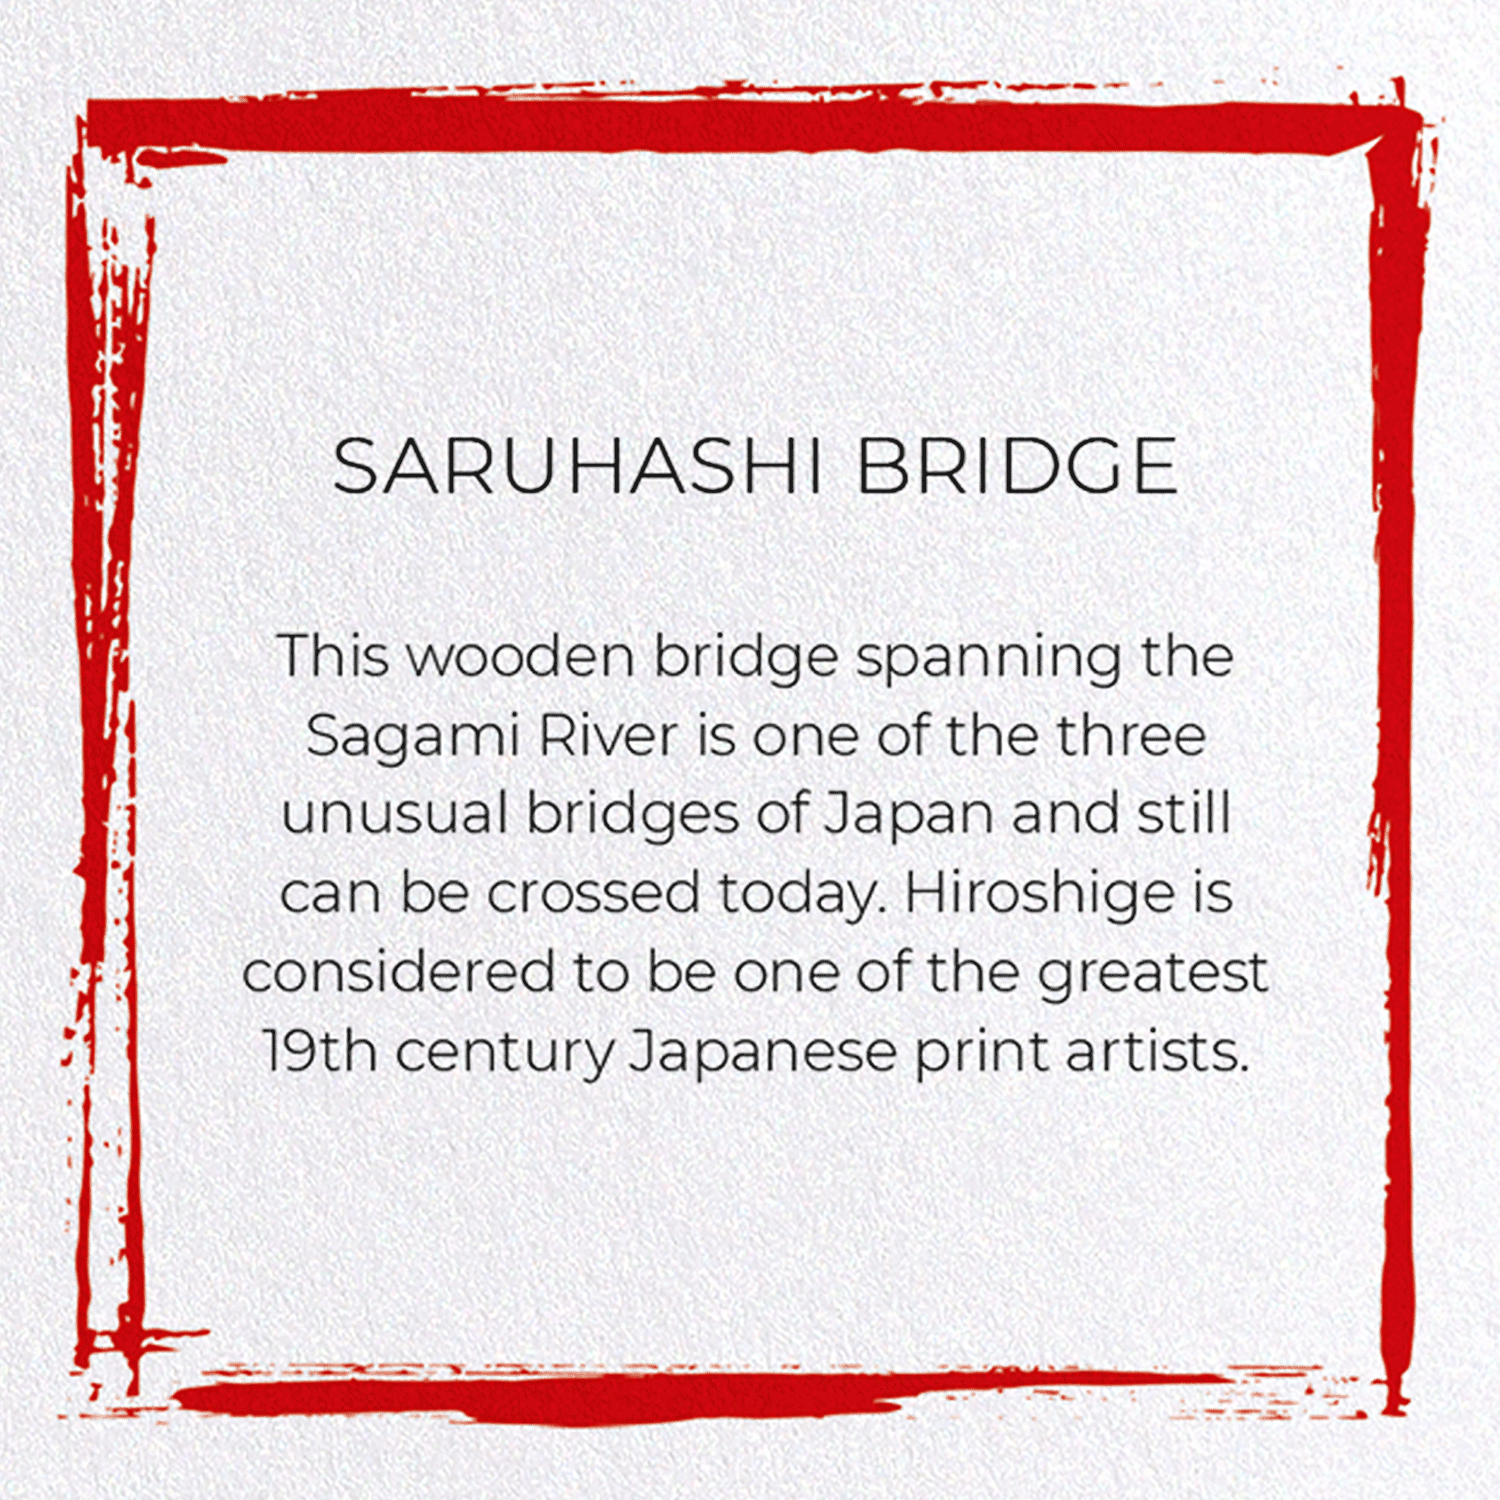 SARUHASHI BRIDGE